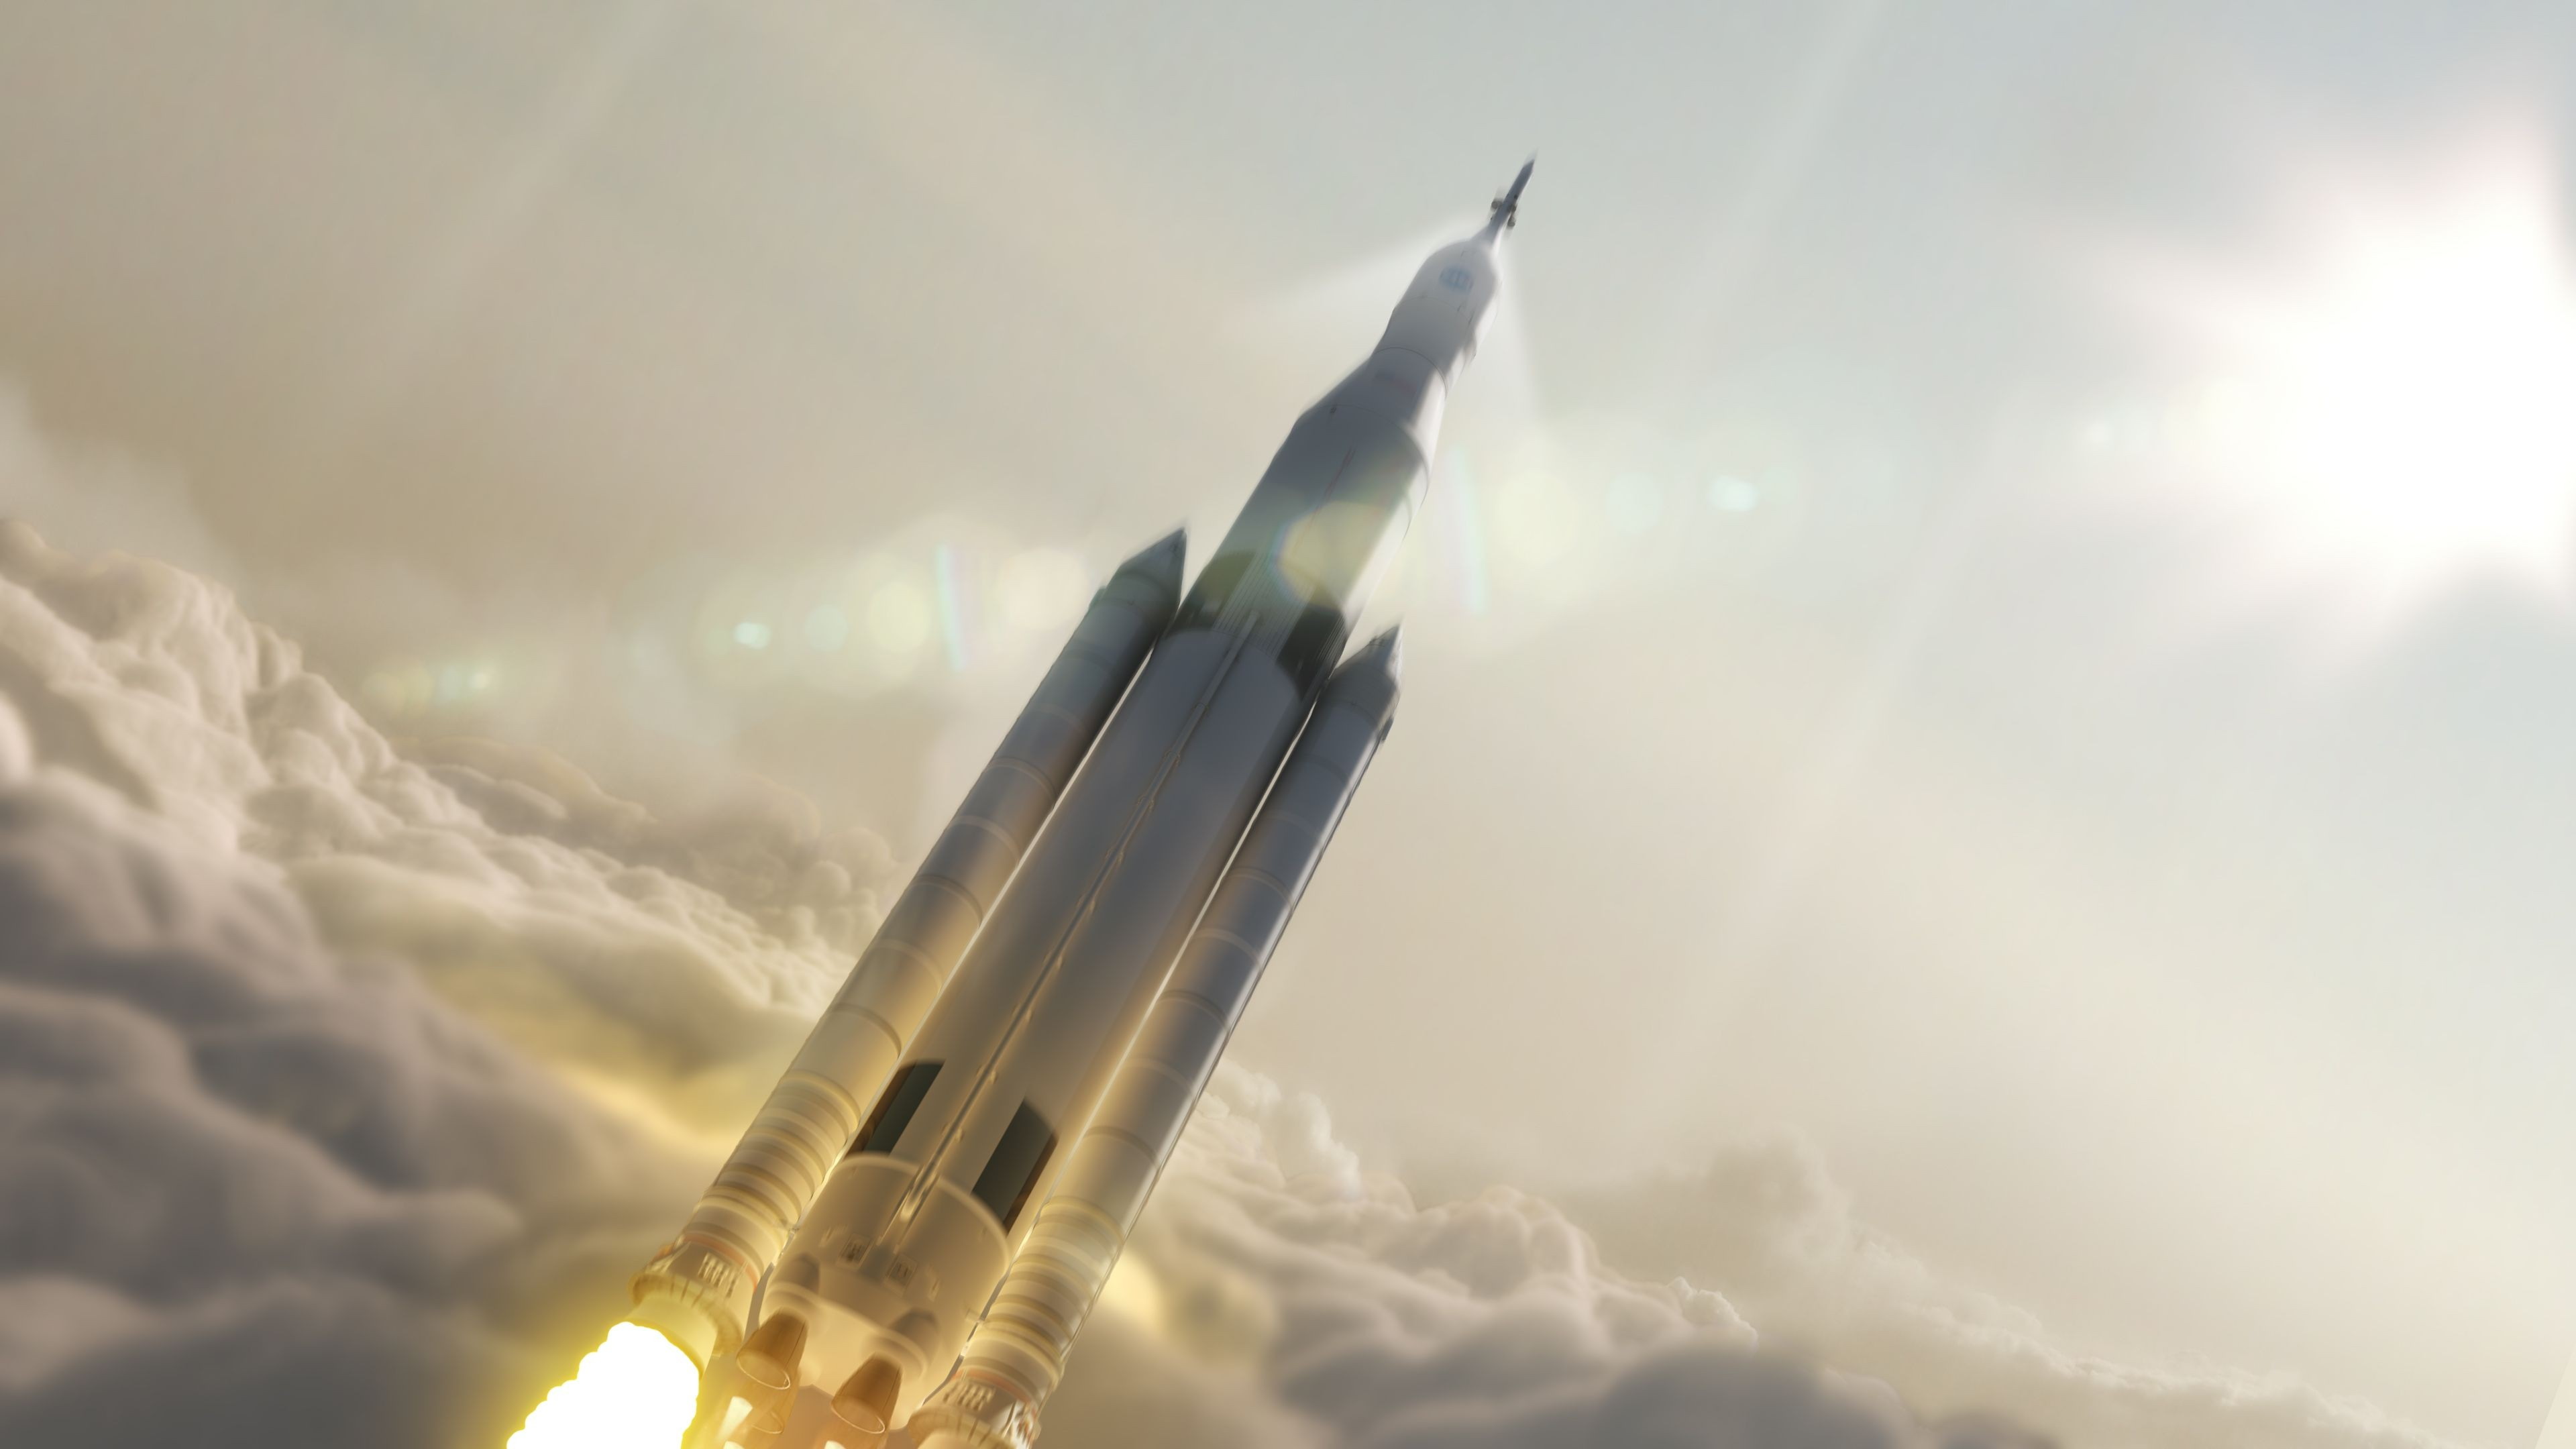 Wallpaper SpaceX, Falcon Heavy, Ship, Rocket, Mars